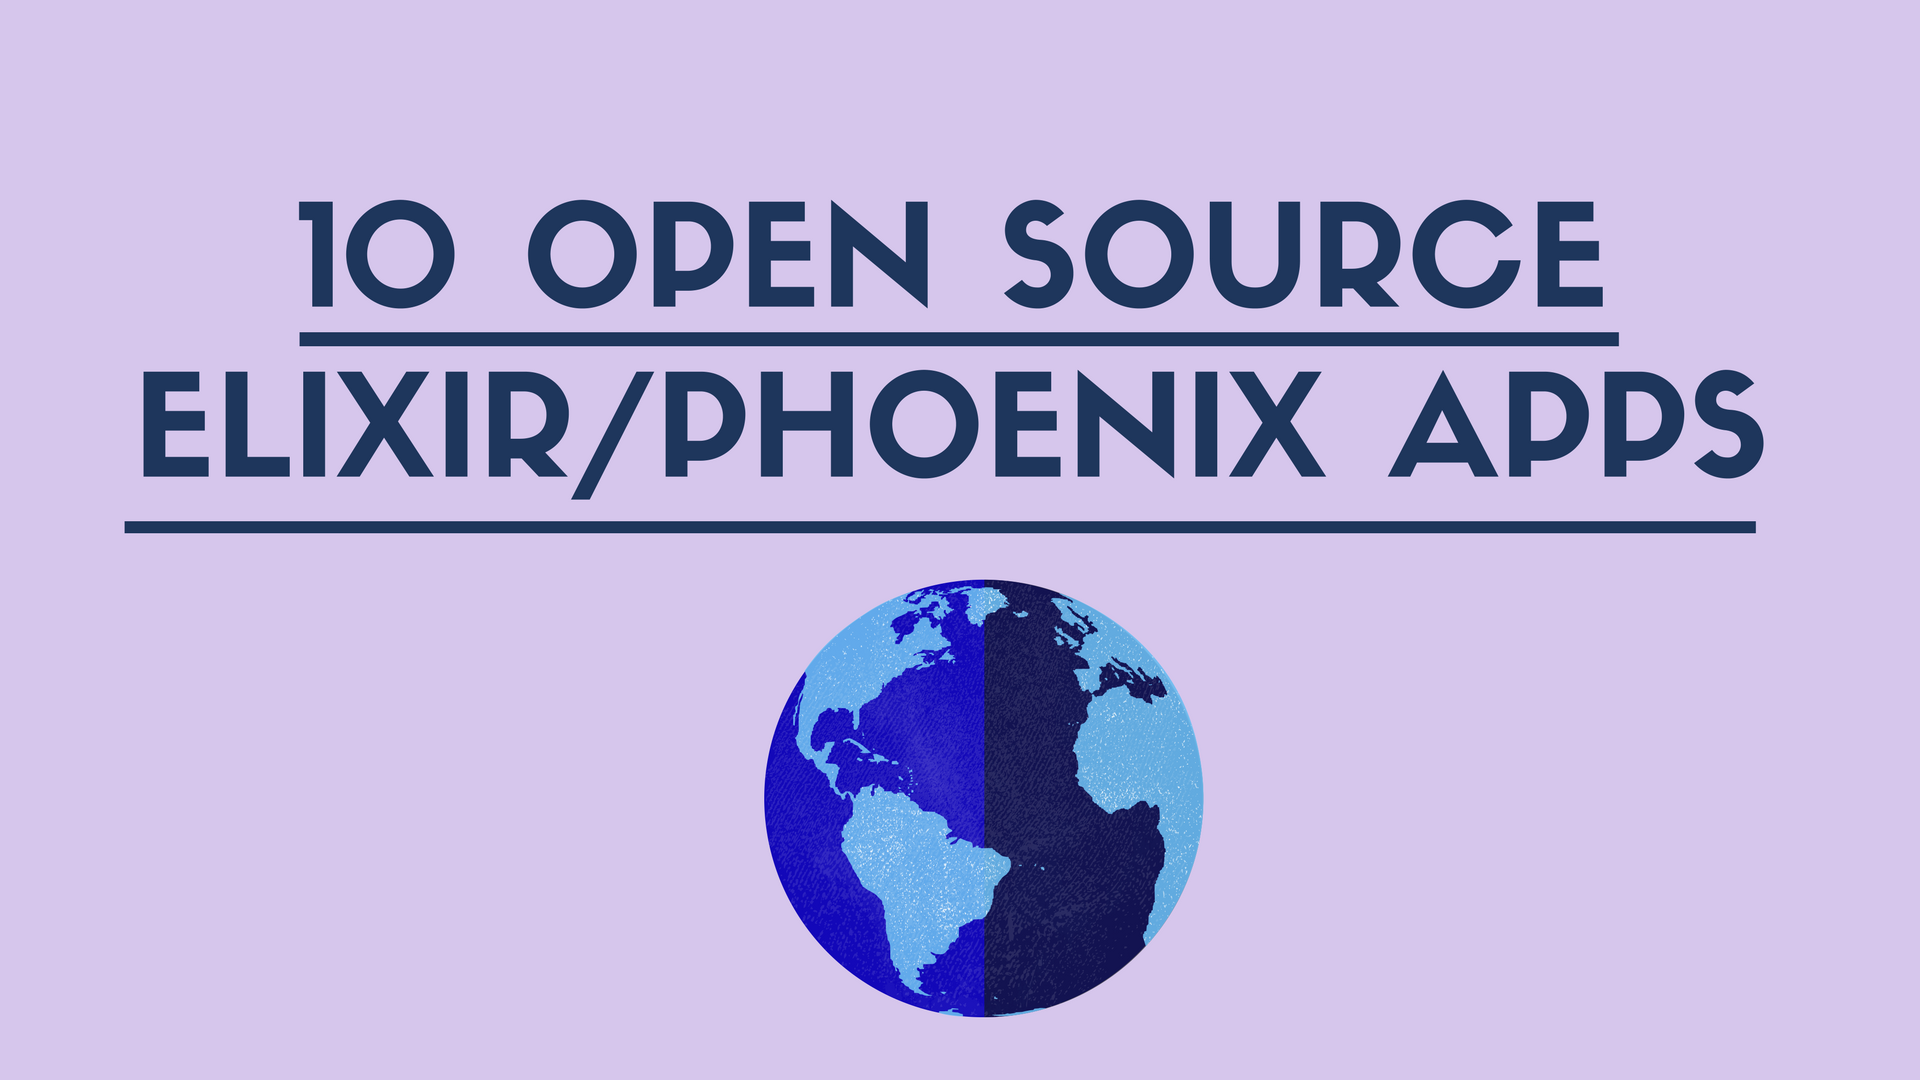 10 Amazing open source Elixir/Phoenix Apps - Aviabird - Medium